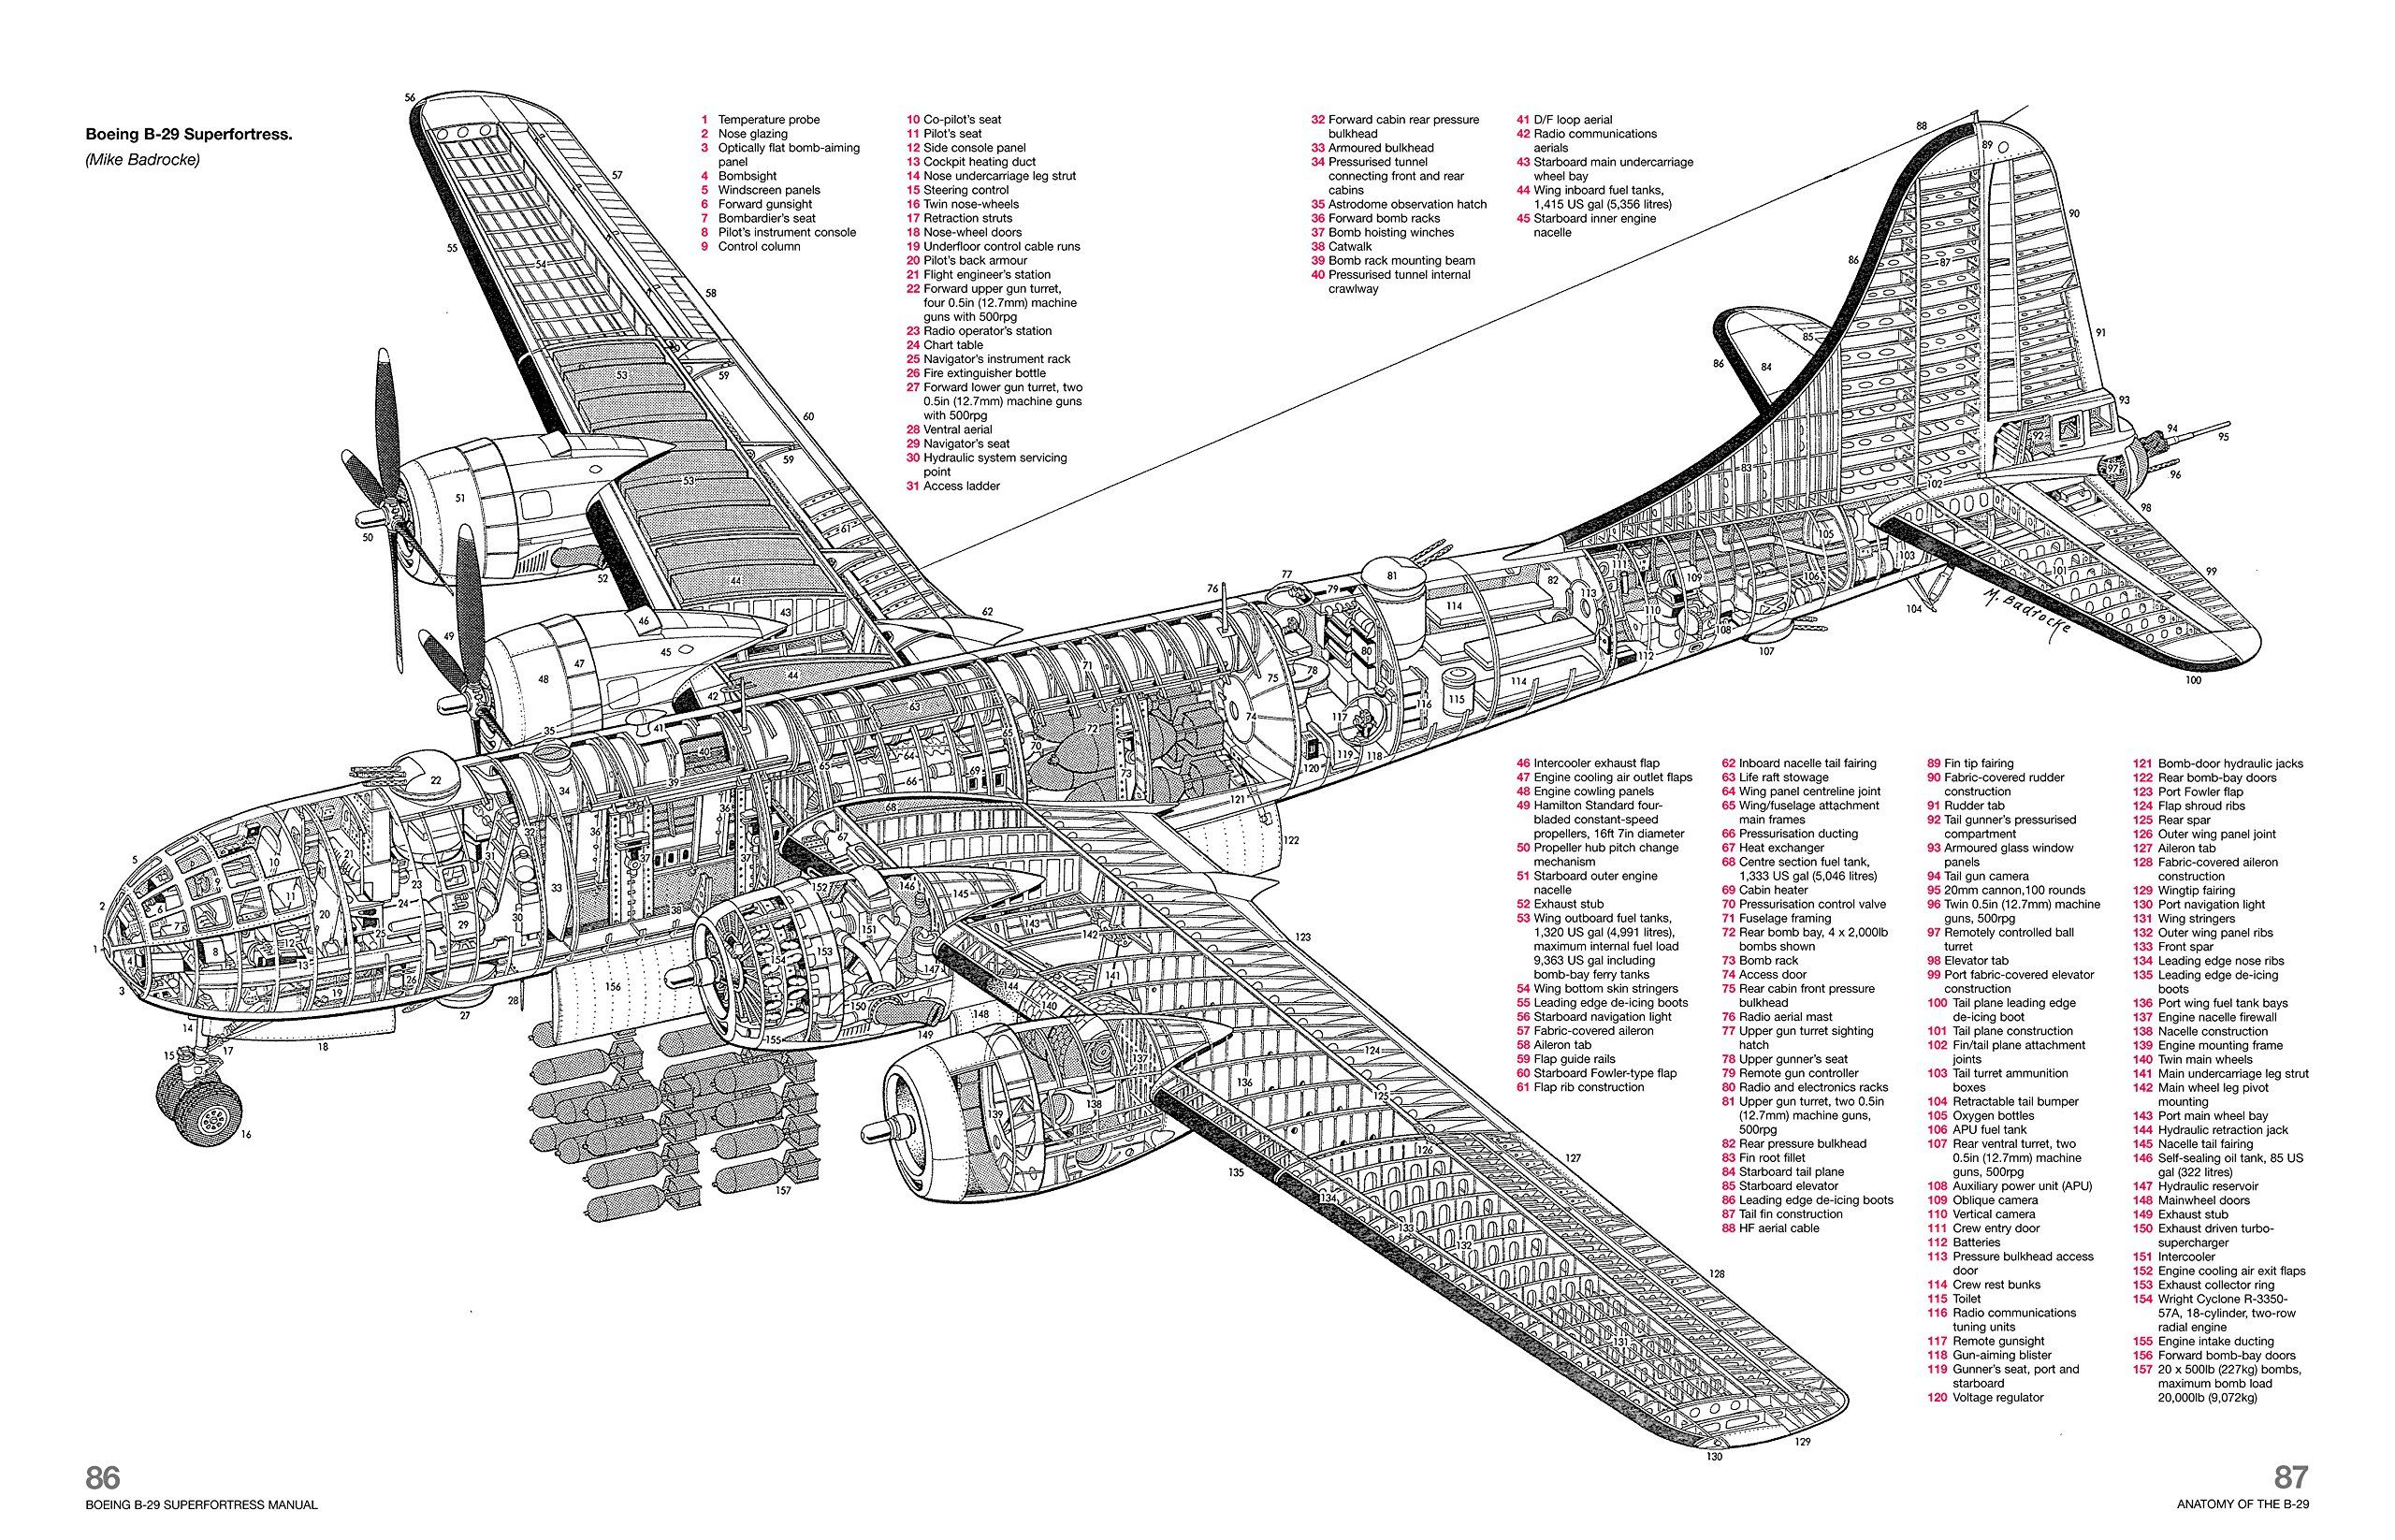 medium resolution of b 29 engine diagram wiring diagram namecutaways and diagrams on pinterest cutaway spacecraft and engine b